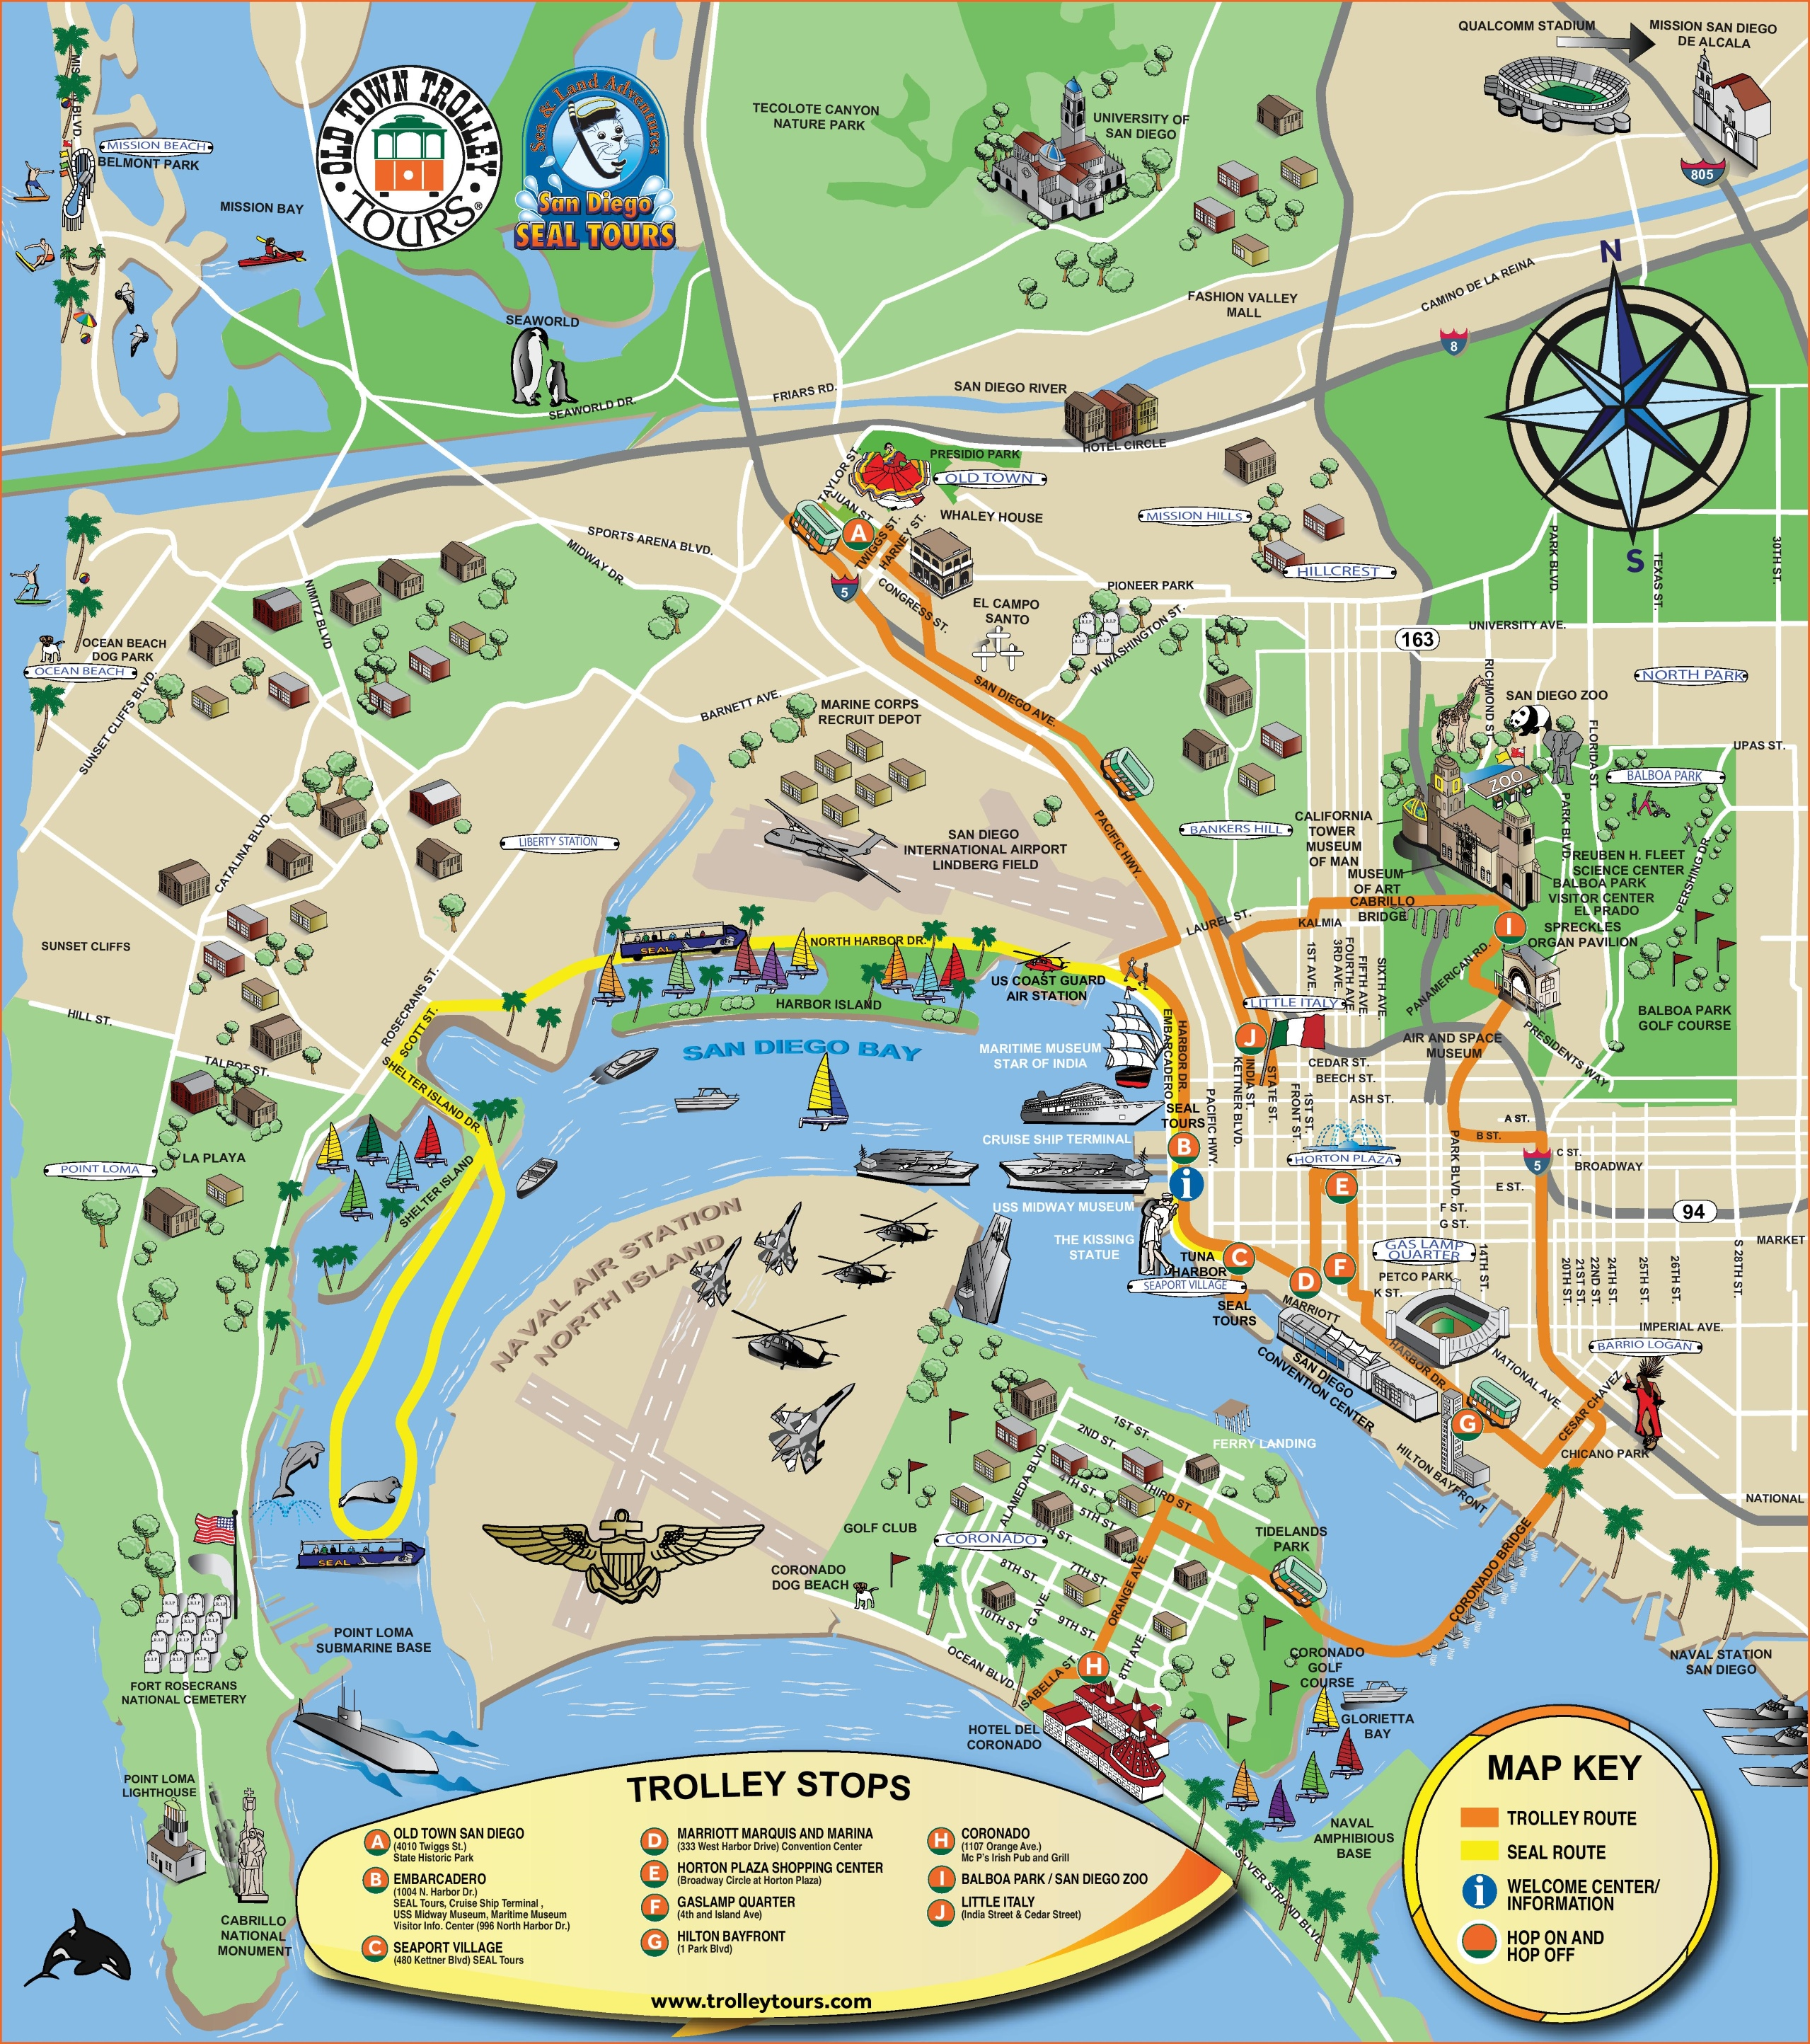 San Diego tourist attractions map – Brazil Tourist Attractions Map